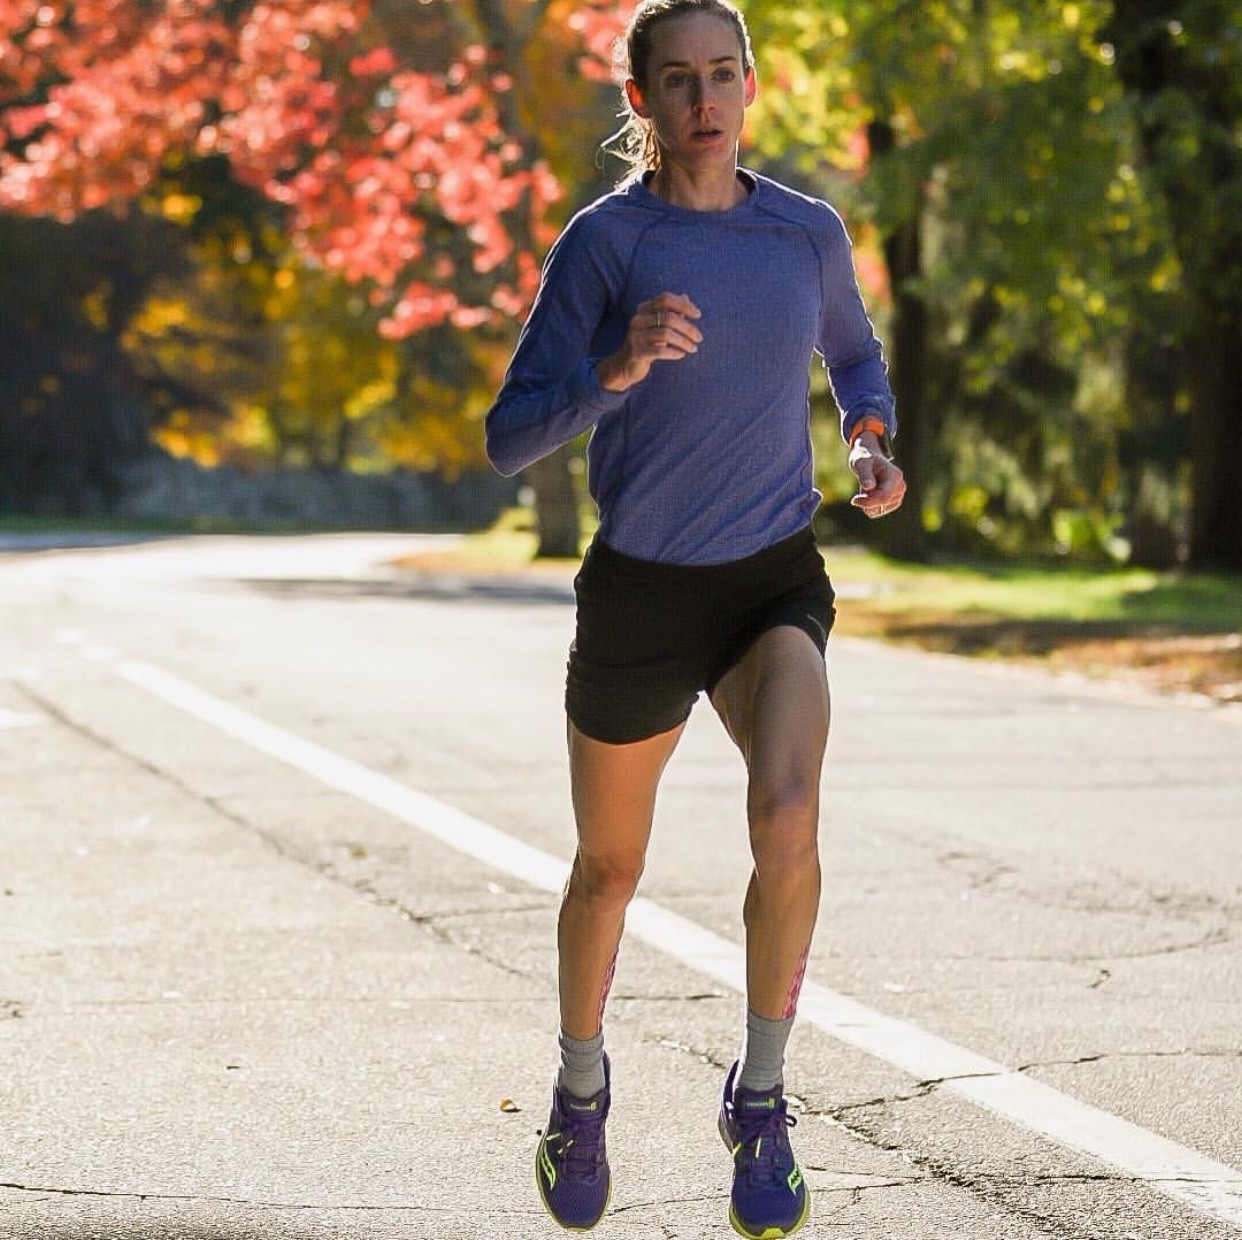 America's Molly Huddle just might be the one to beat at this year's New York City Marathon